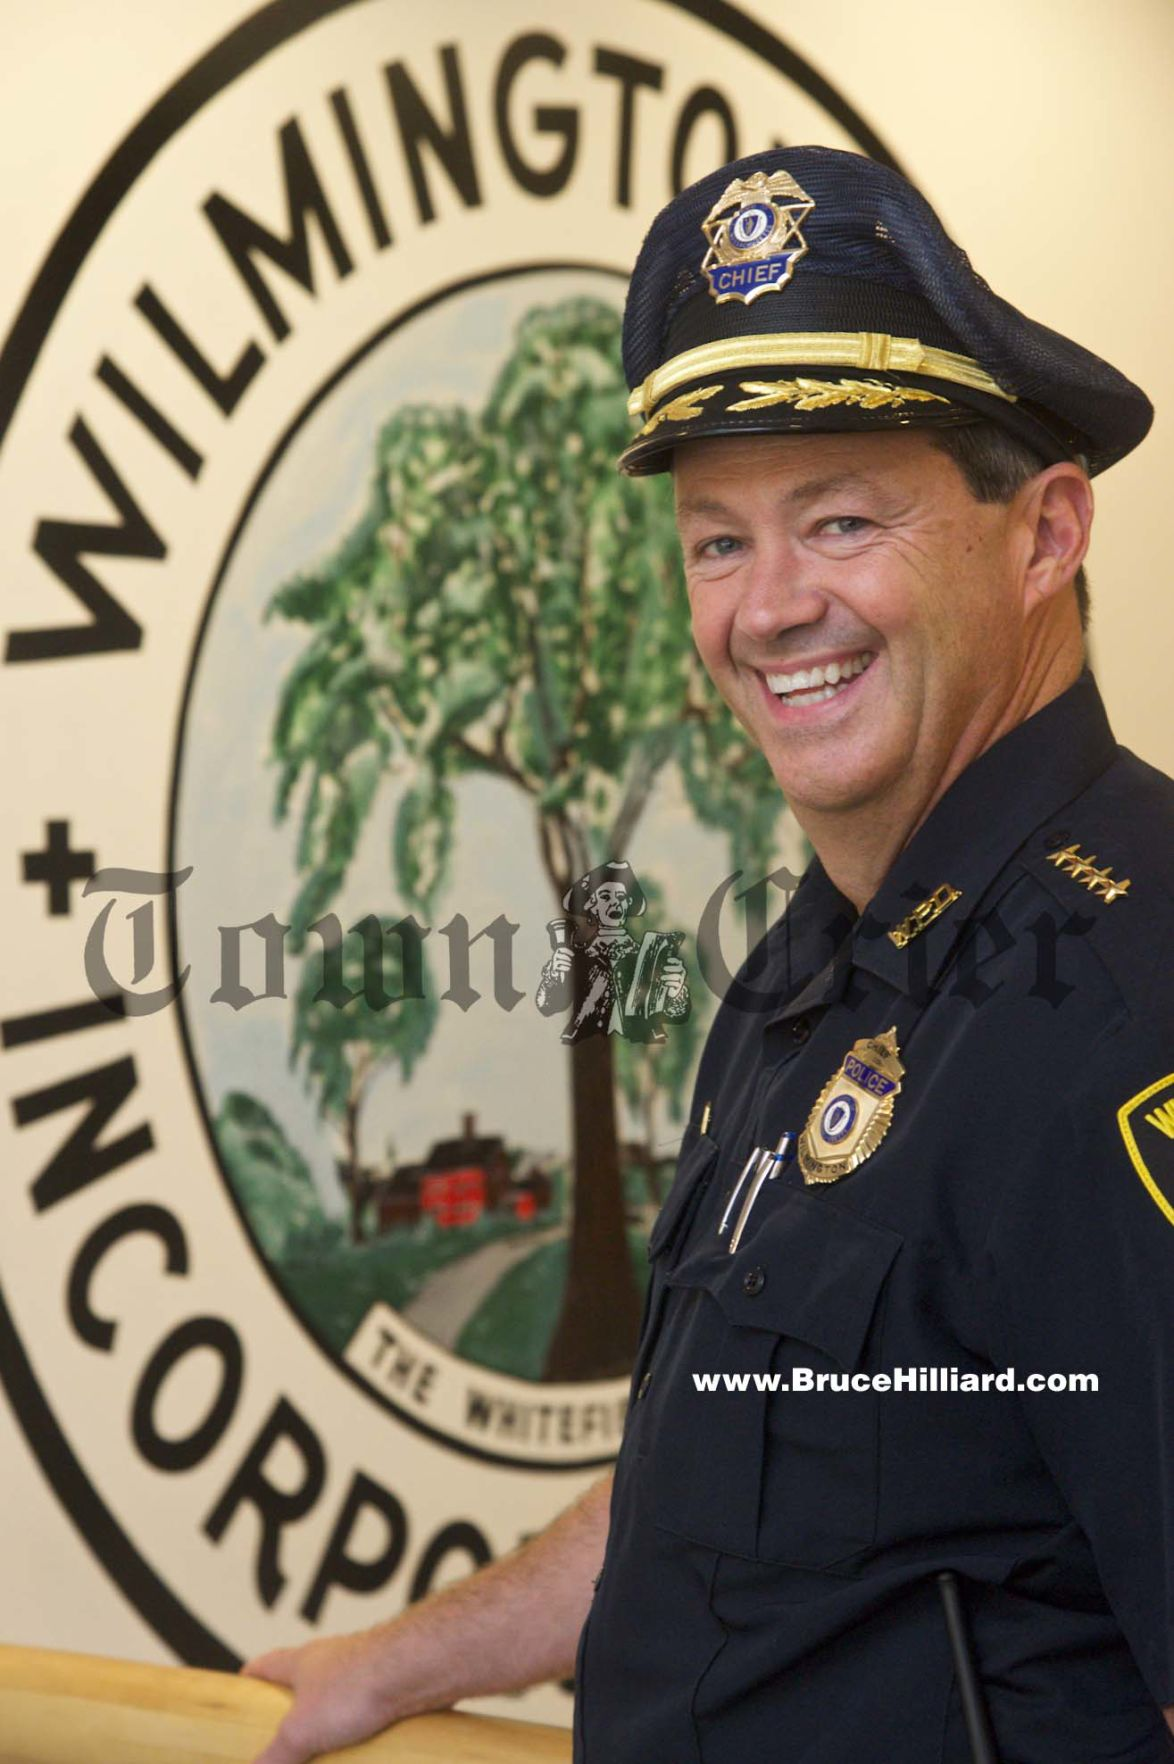 New Police Chief, Joseph Desmond